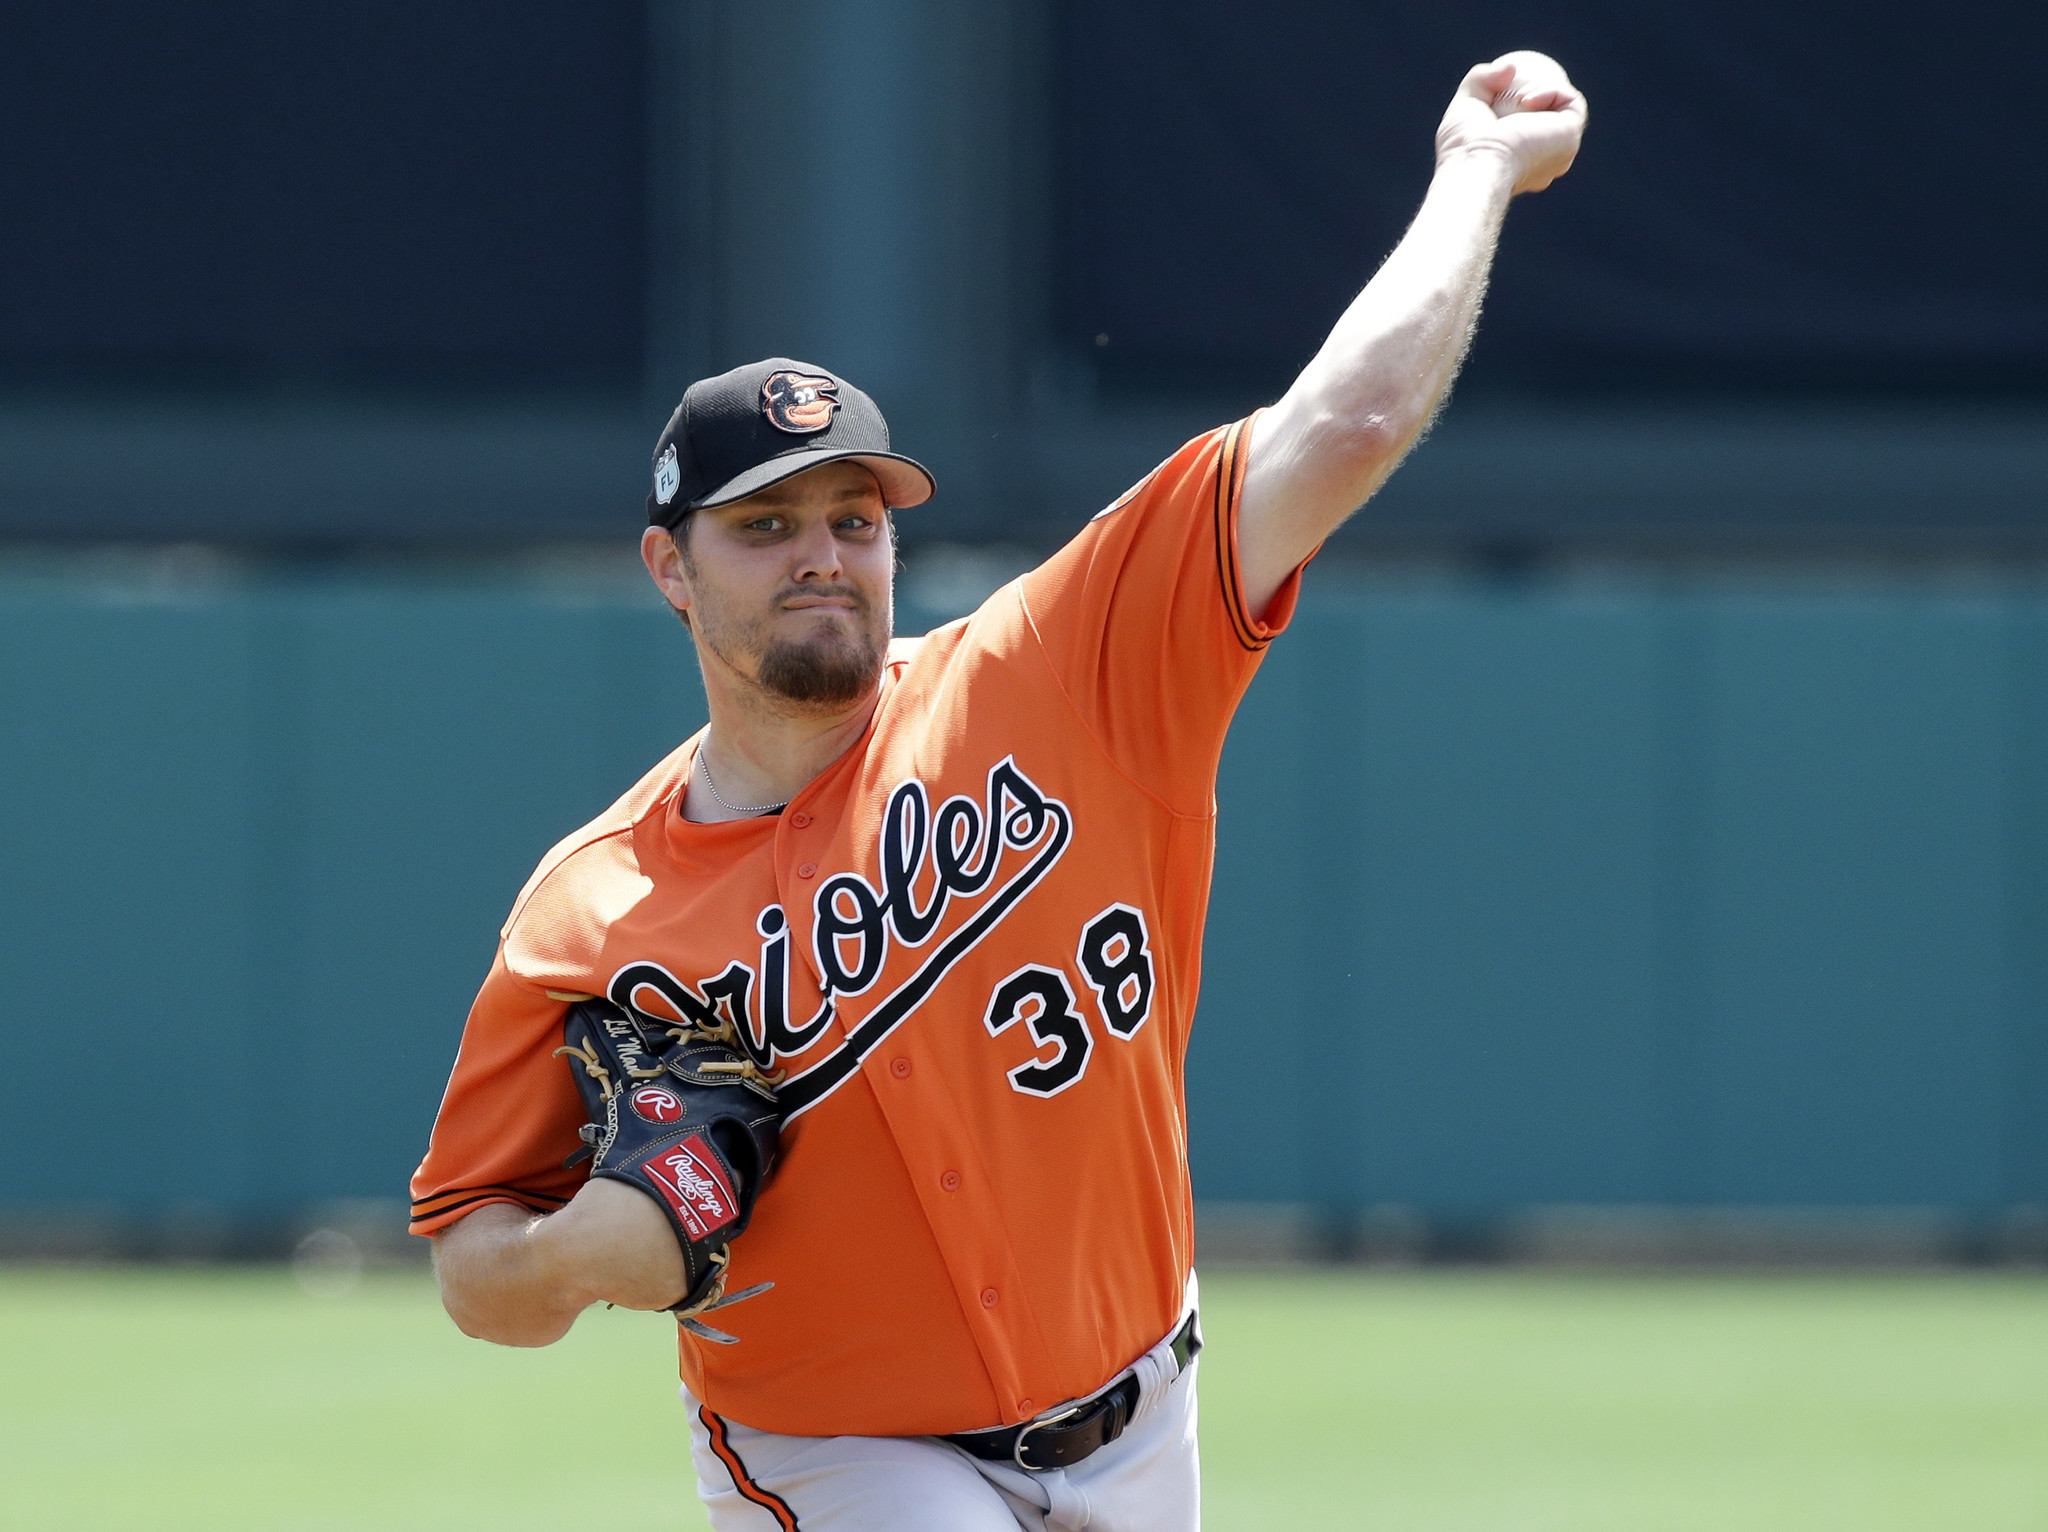 Bal-wade-miley-shows-he-s-ready-for-the-season-with-longest-outing-of-spring-in-5-4-orioles-win-20170328